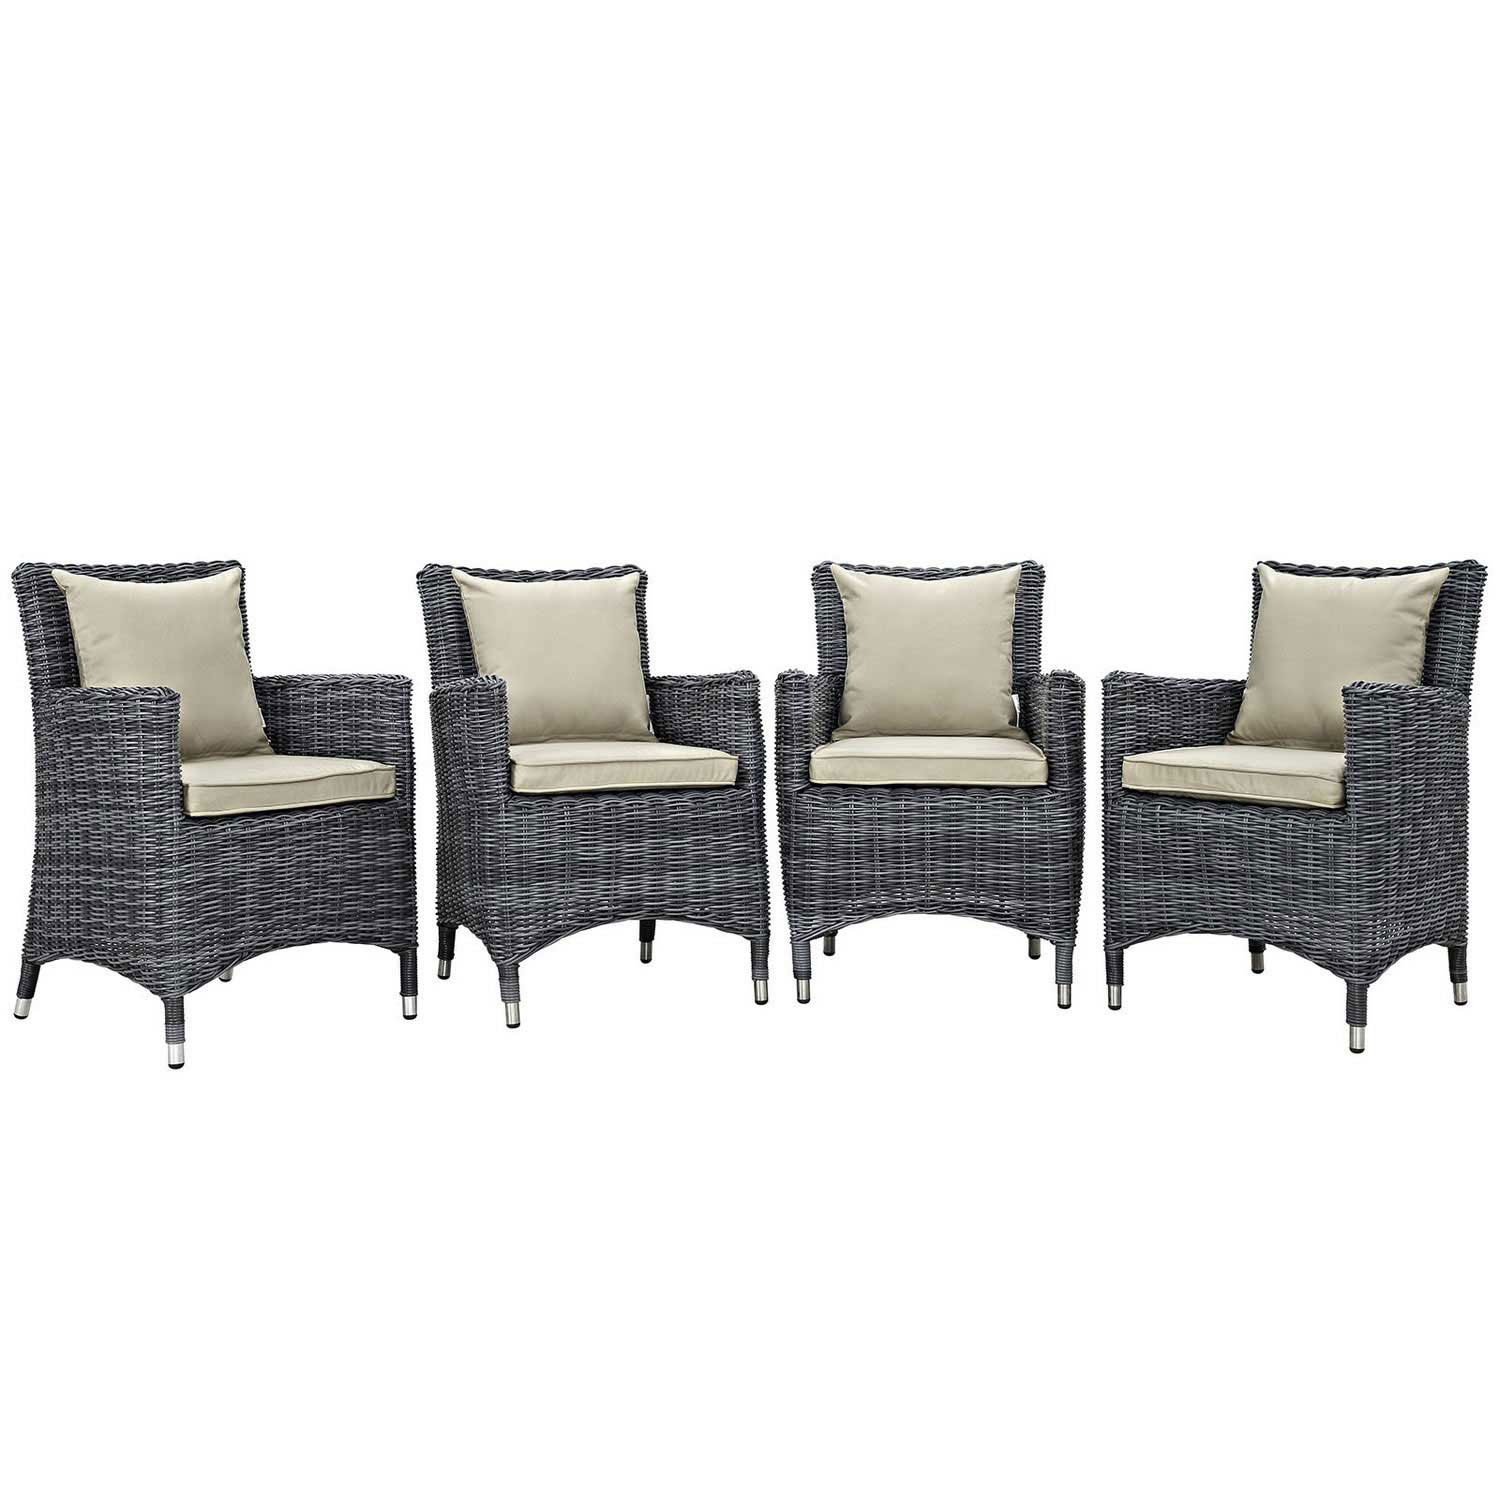 Modway Summon 4 Piece Outdoor Patio Sunbrella Dining Set - Antique Canvas Beige